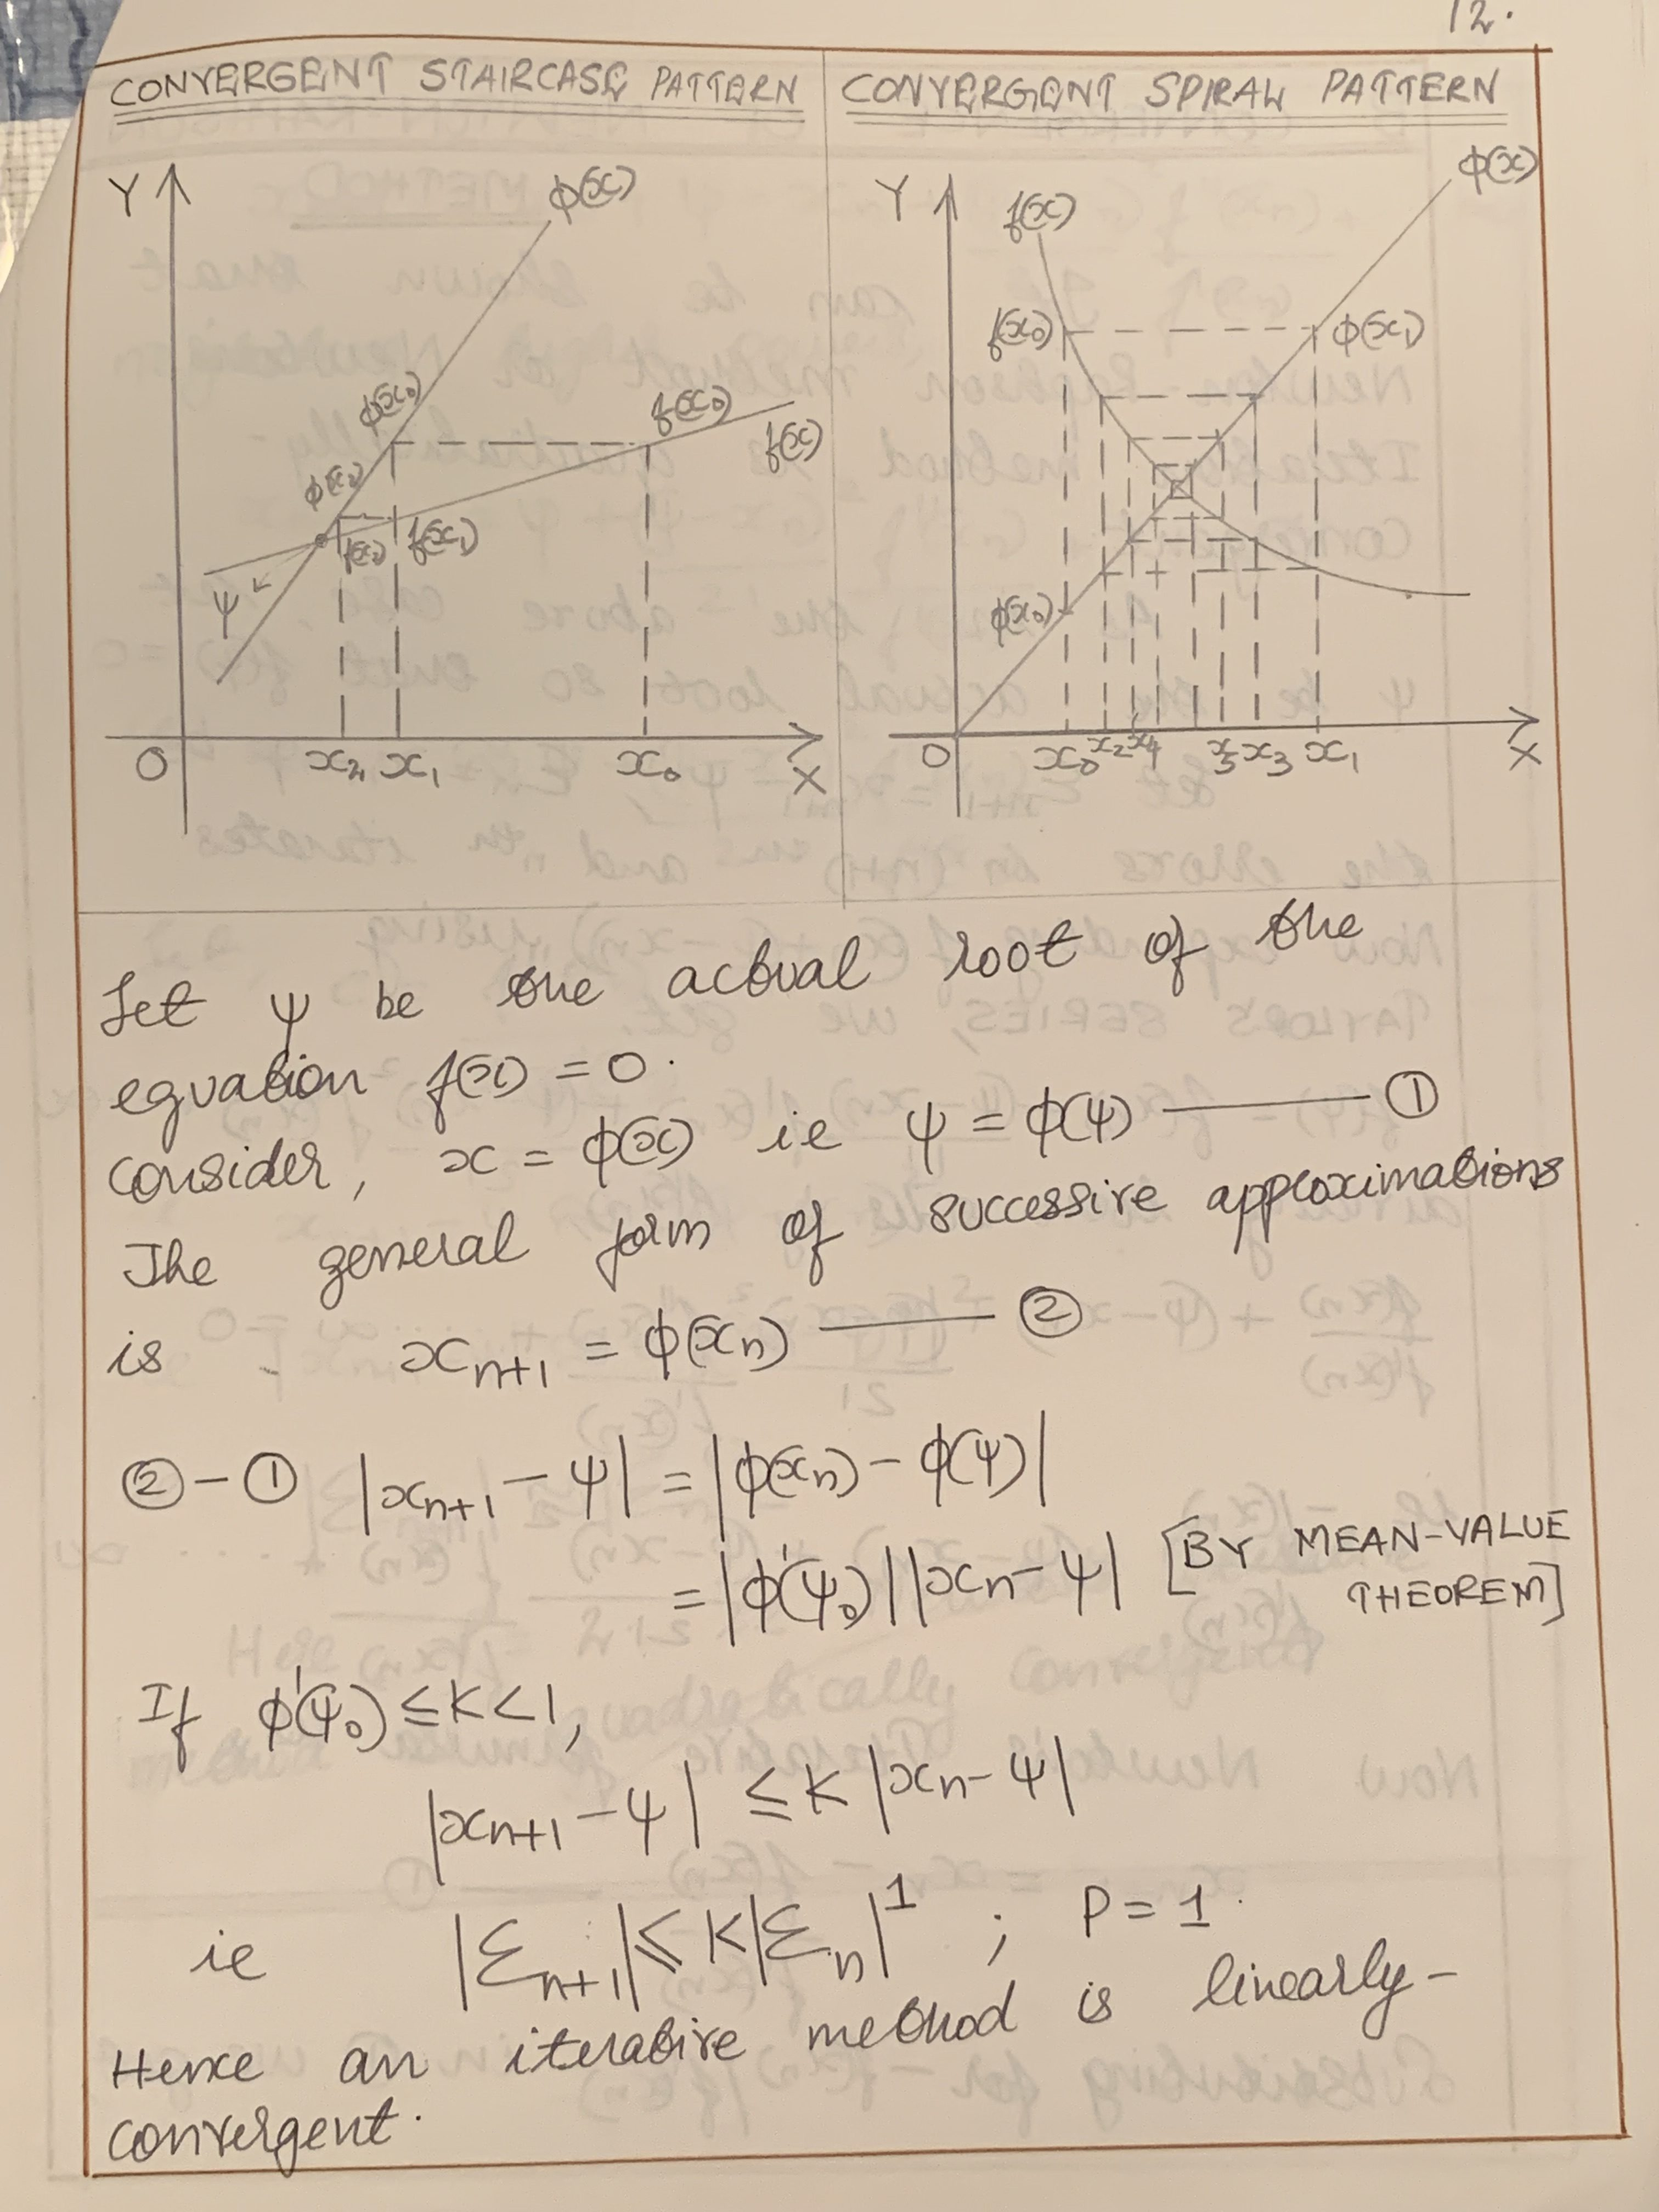 discuss-convergence-of-iterative-and-newton-raphson3